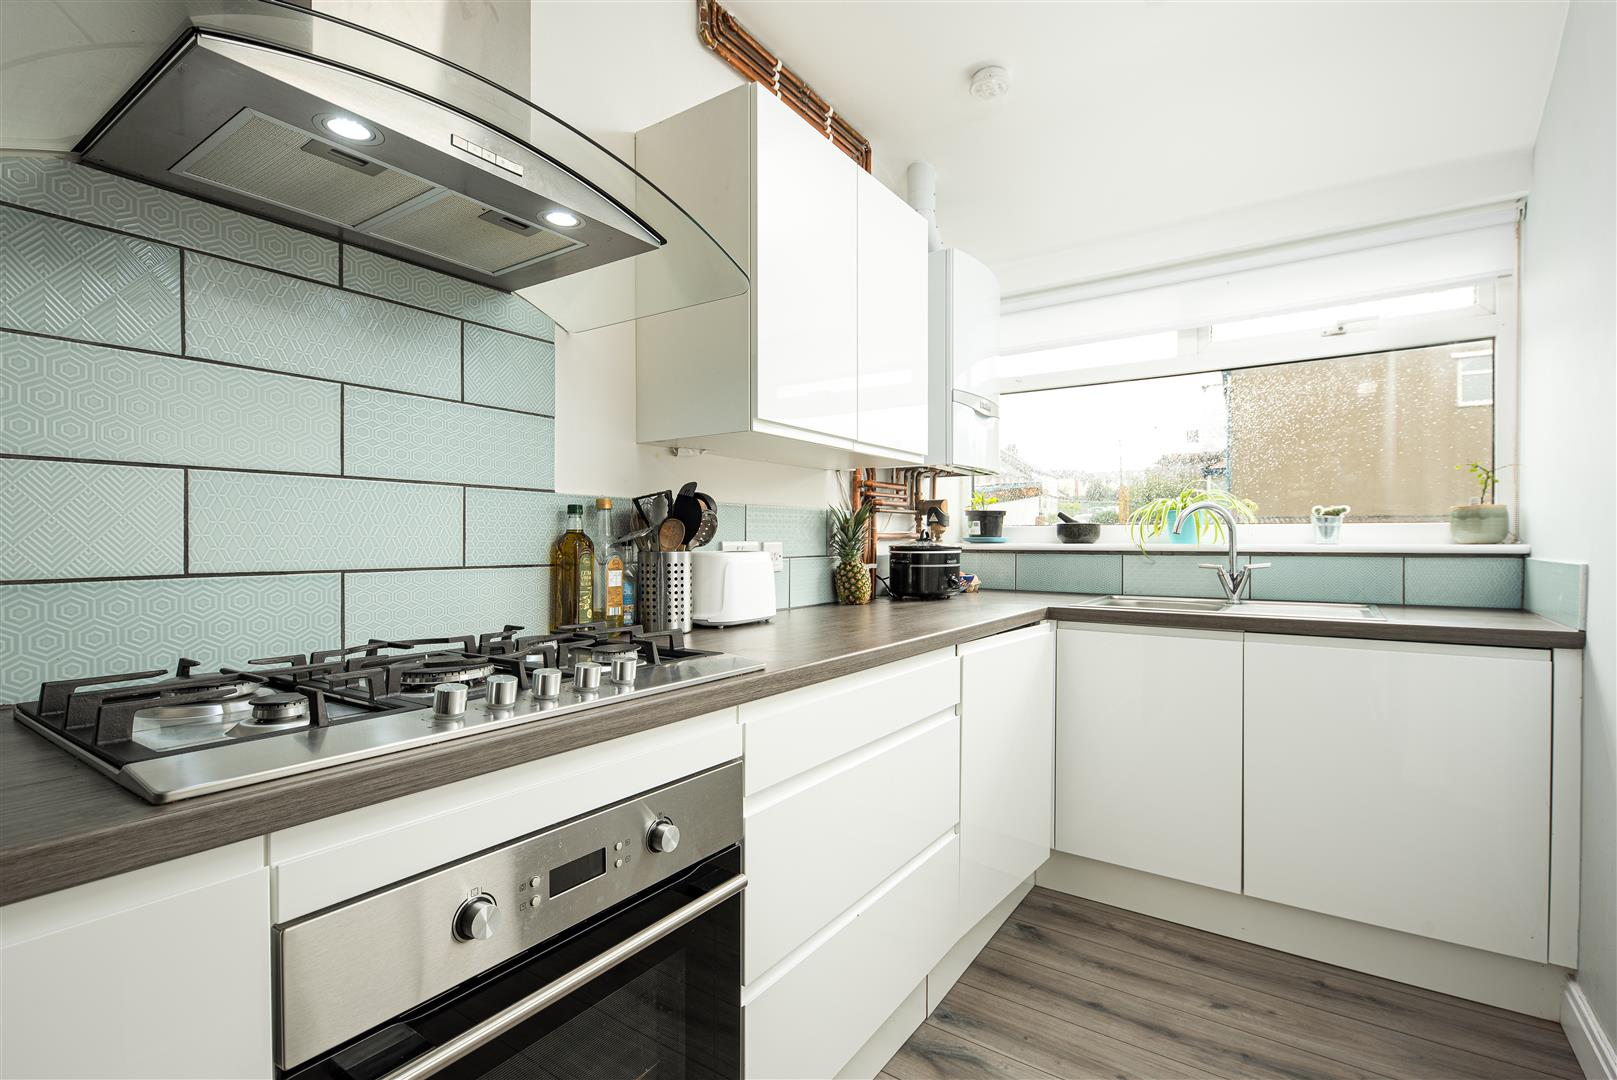 4 bed house to rent in Keys Avenue, Bristol  - Property Image 3